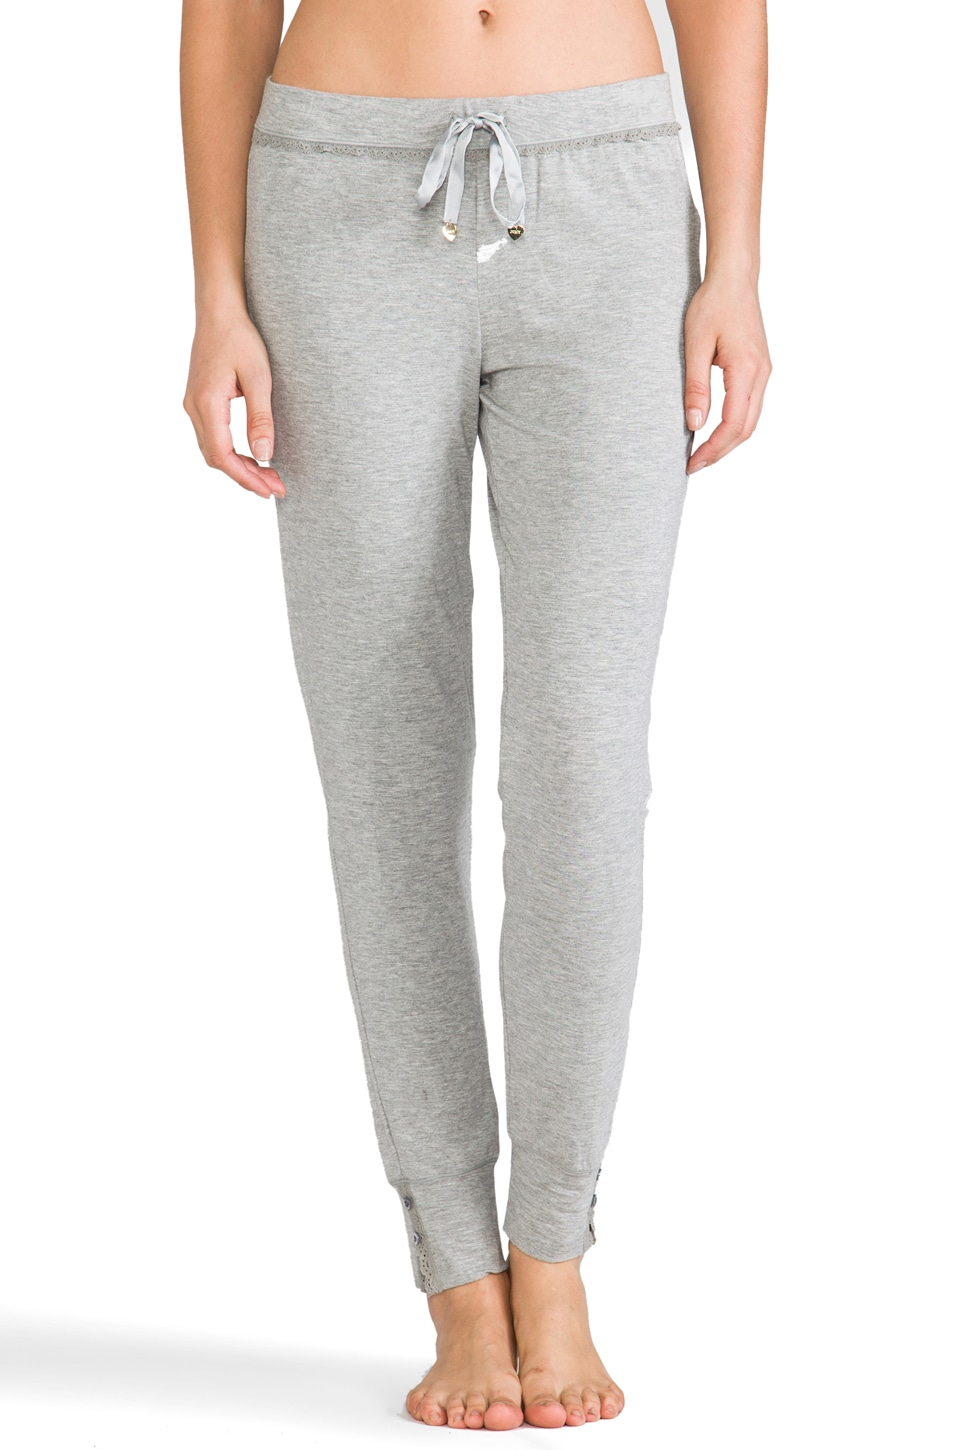 Juicy Couture Pant in Heather Cozy